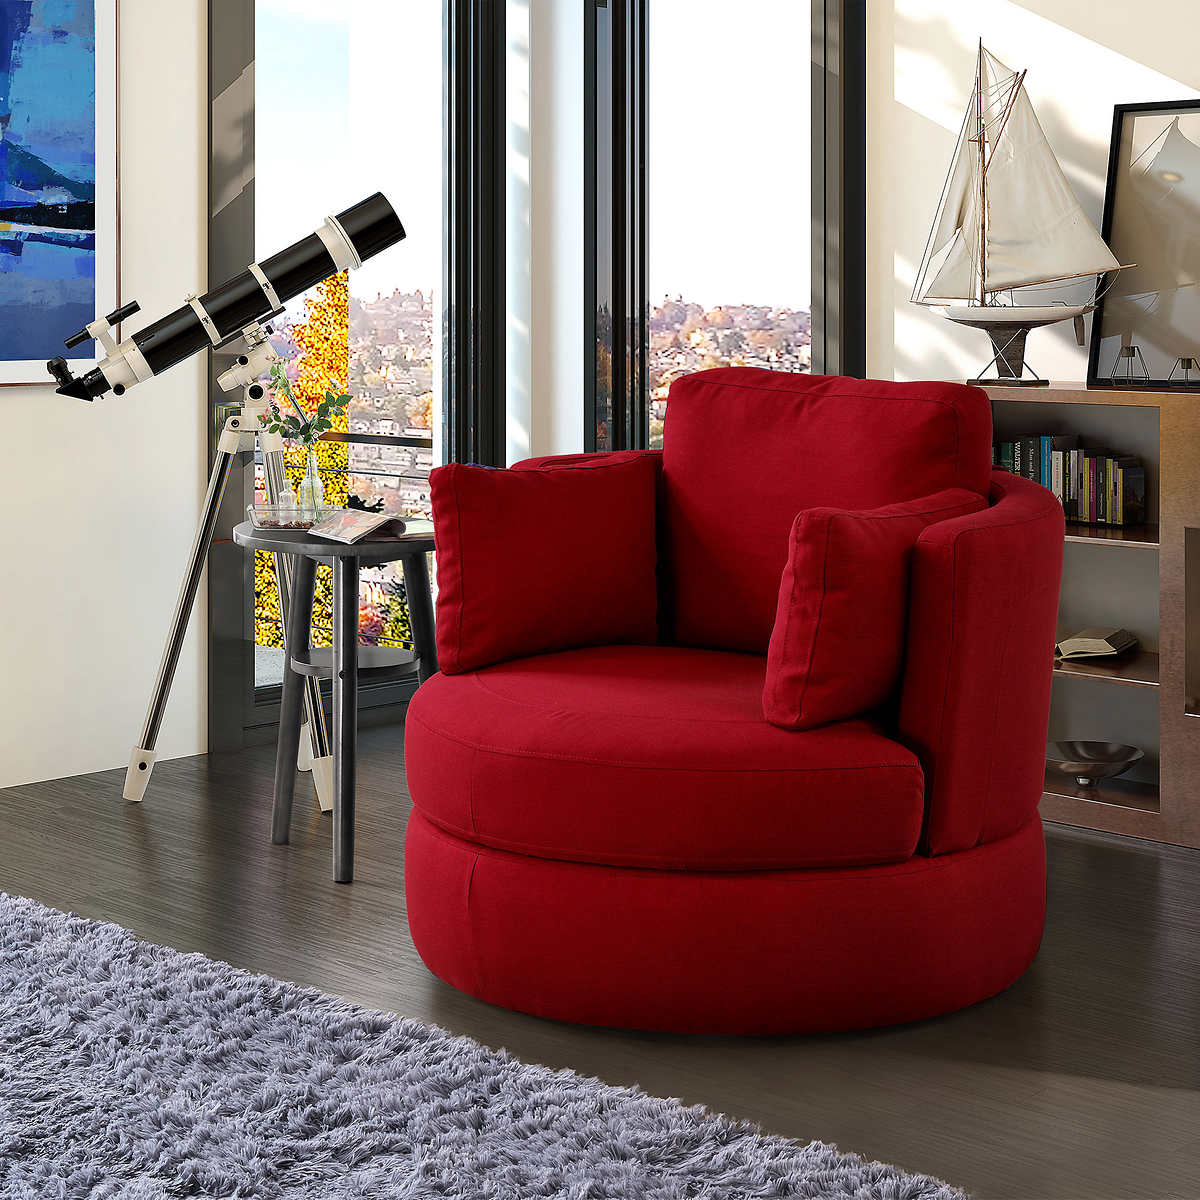 Benson Red Swivel Chair With Storage